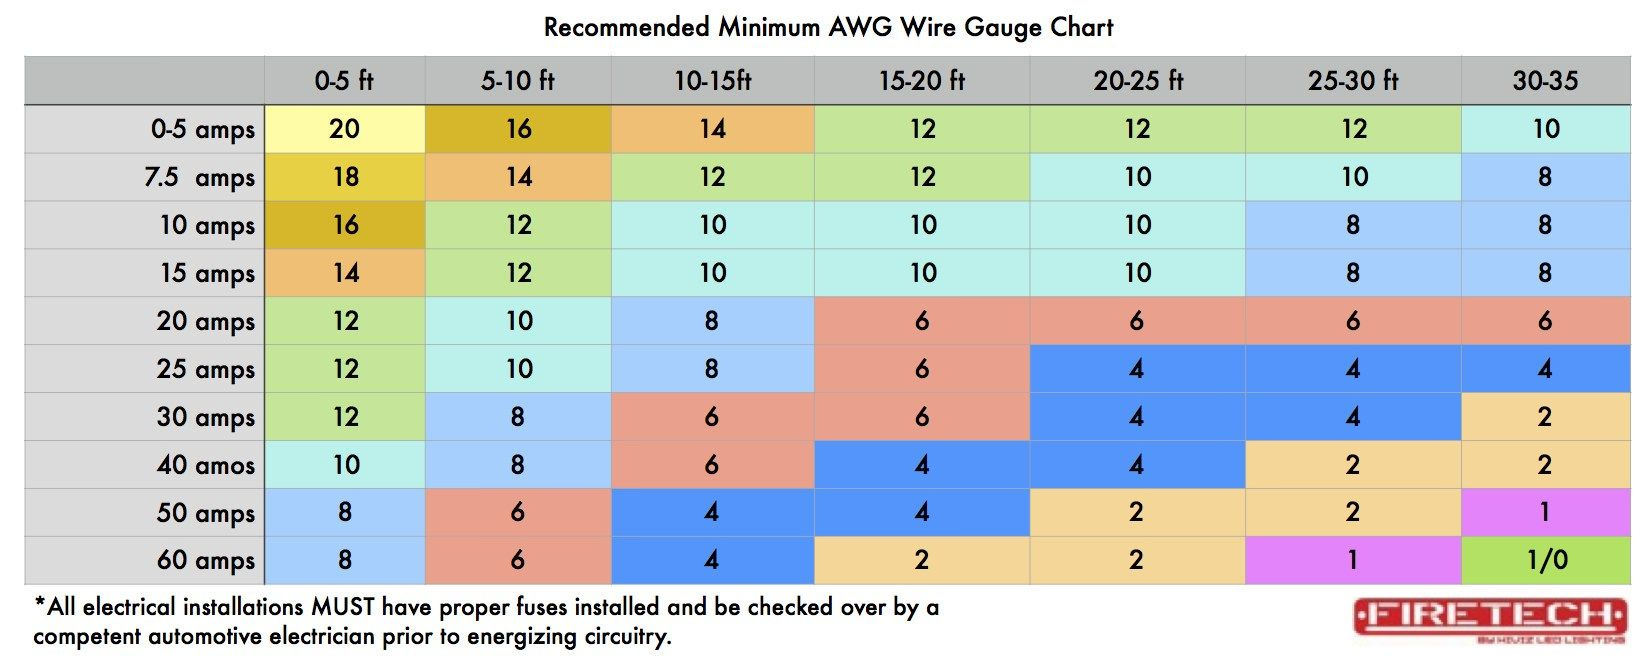 5 amp wire gauge wire center image result for wire size chart wired and switches step by step rh pinterest com electrical wire gauge chart amps 12v 5 amp wire size keyboard keysfo Image collections